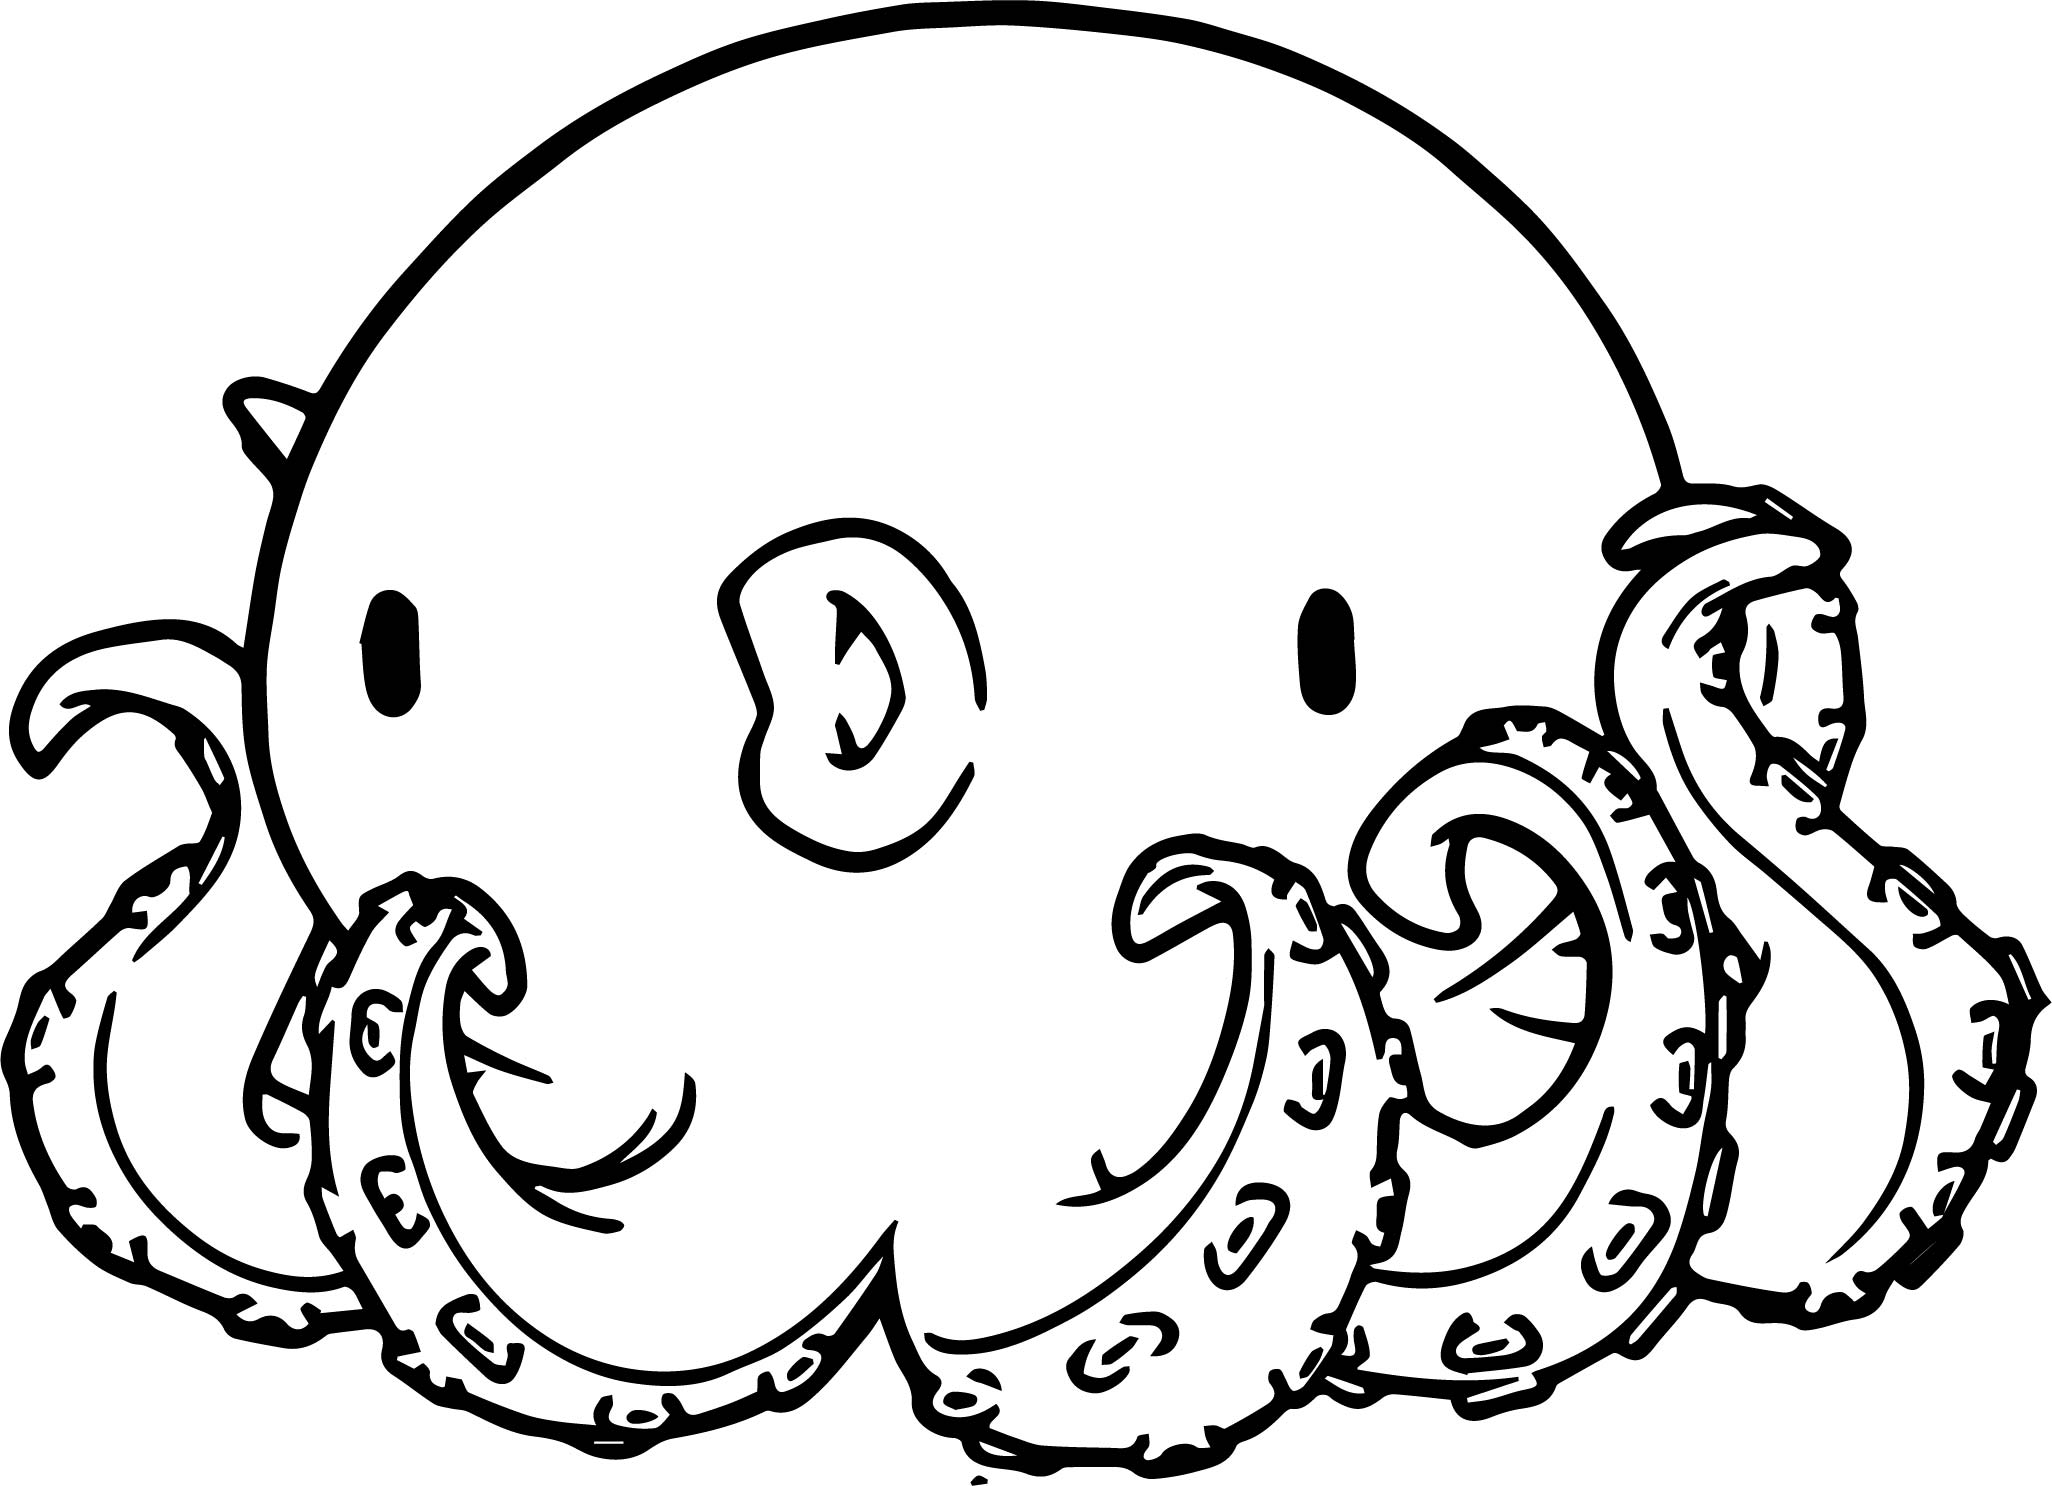 Character Designs Octopus Coloring Page